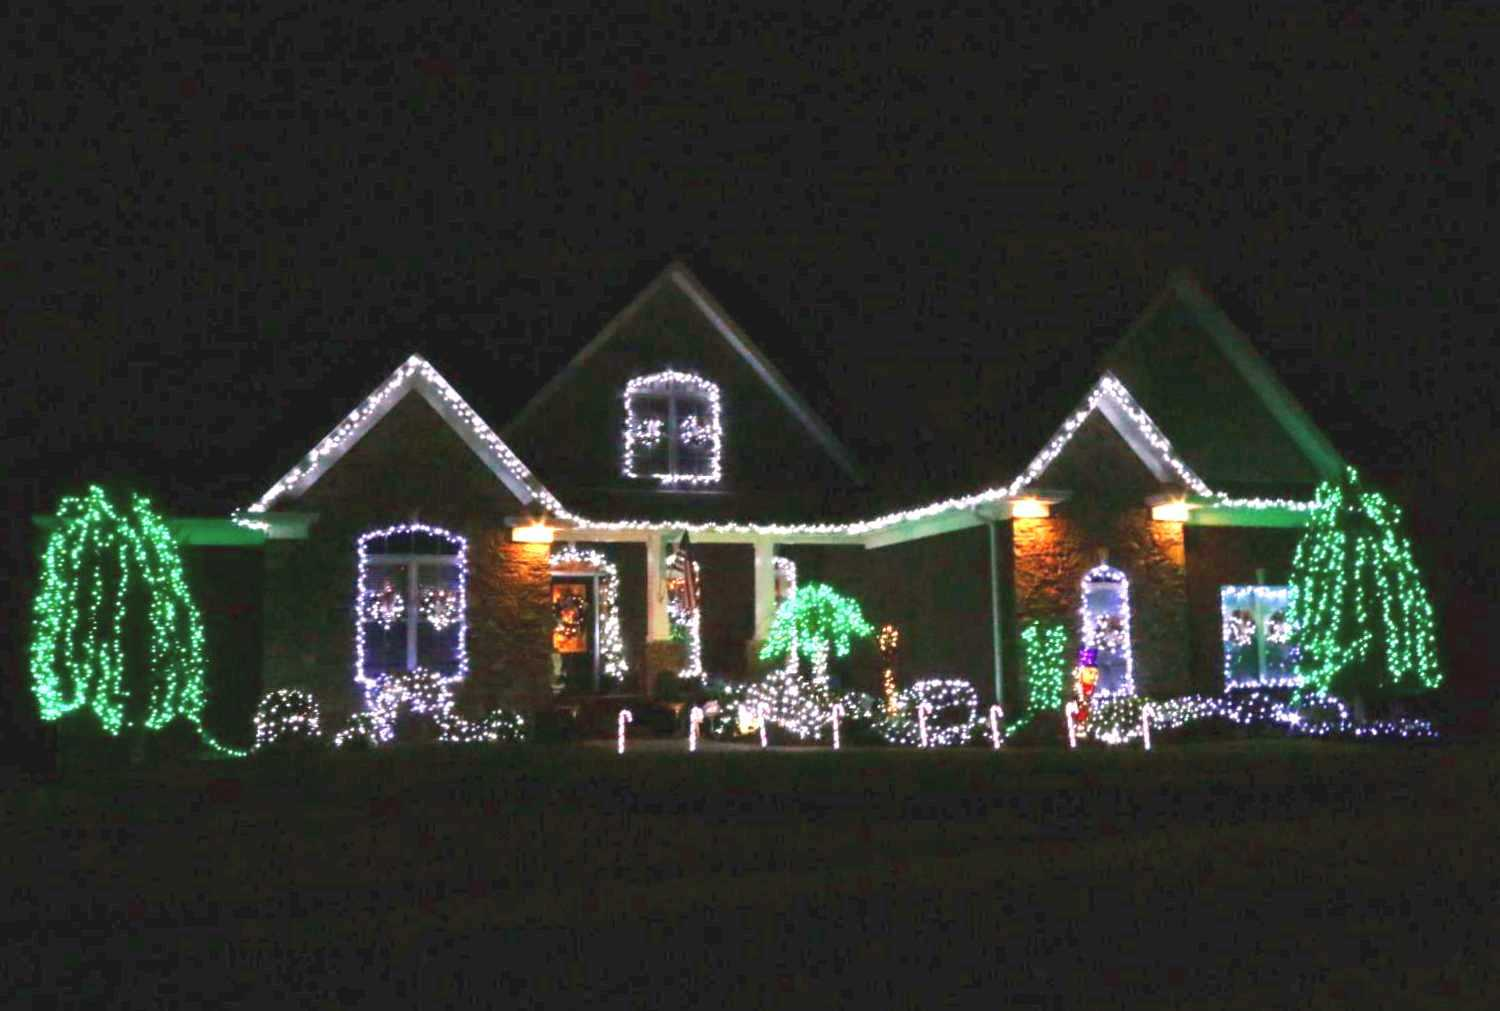 2016 Stones Manor Christmas Decoration Contest